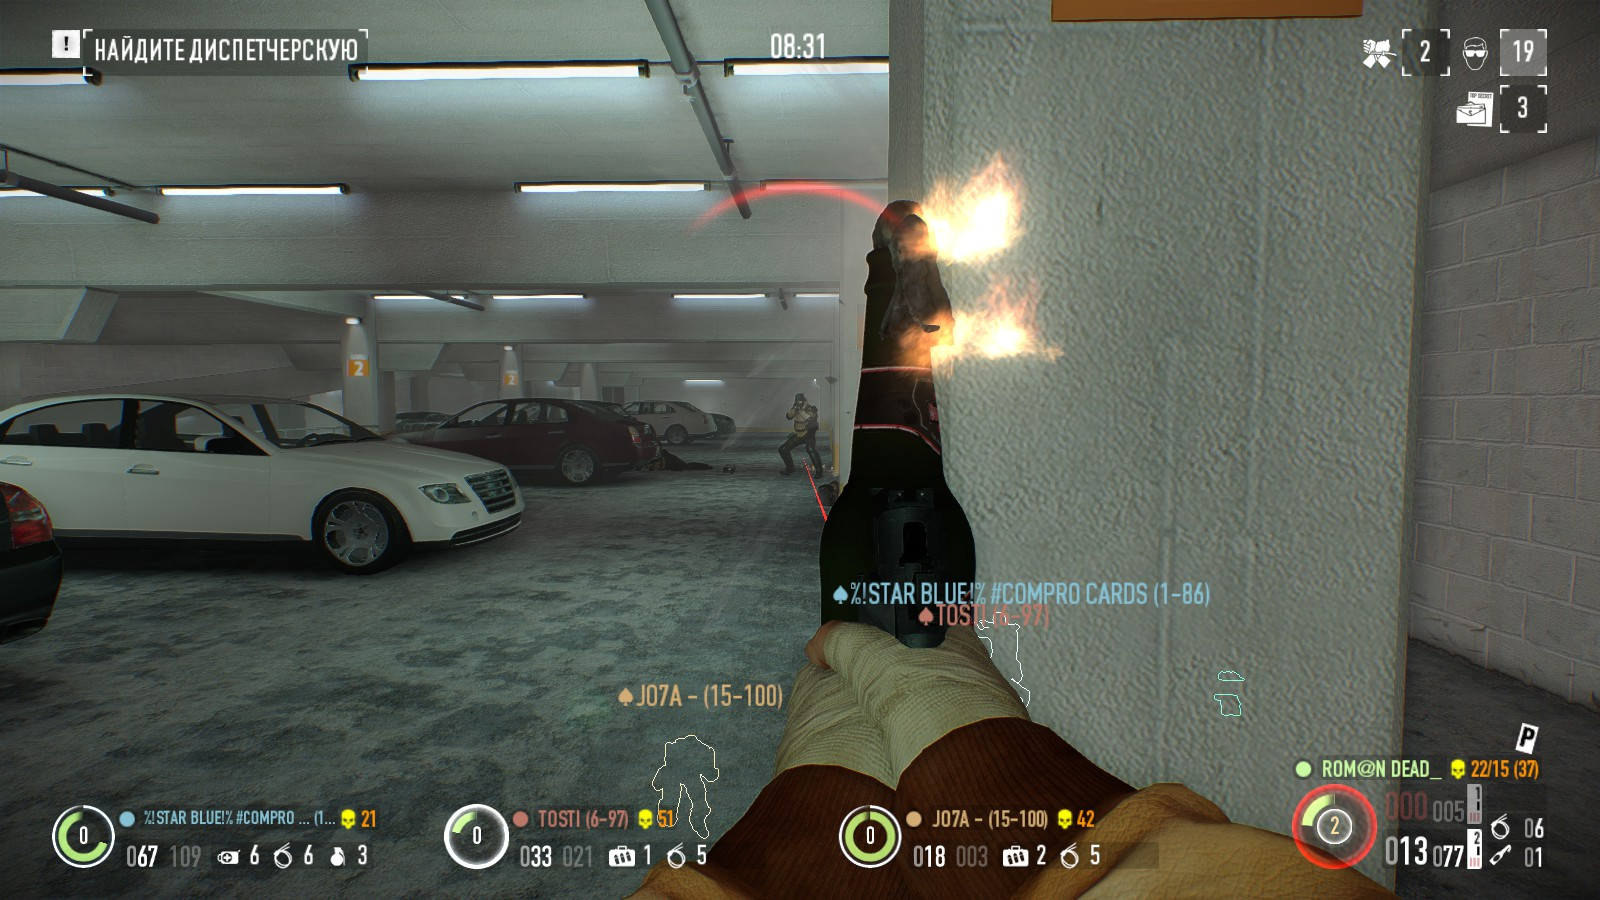 Molotov cocktail with a silencer and laser sight. - Payday 2 bugs